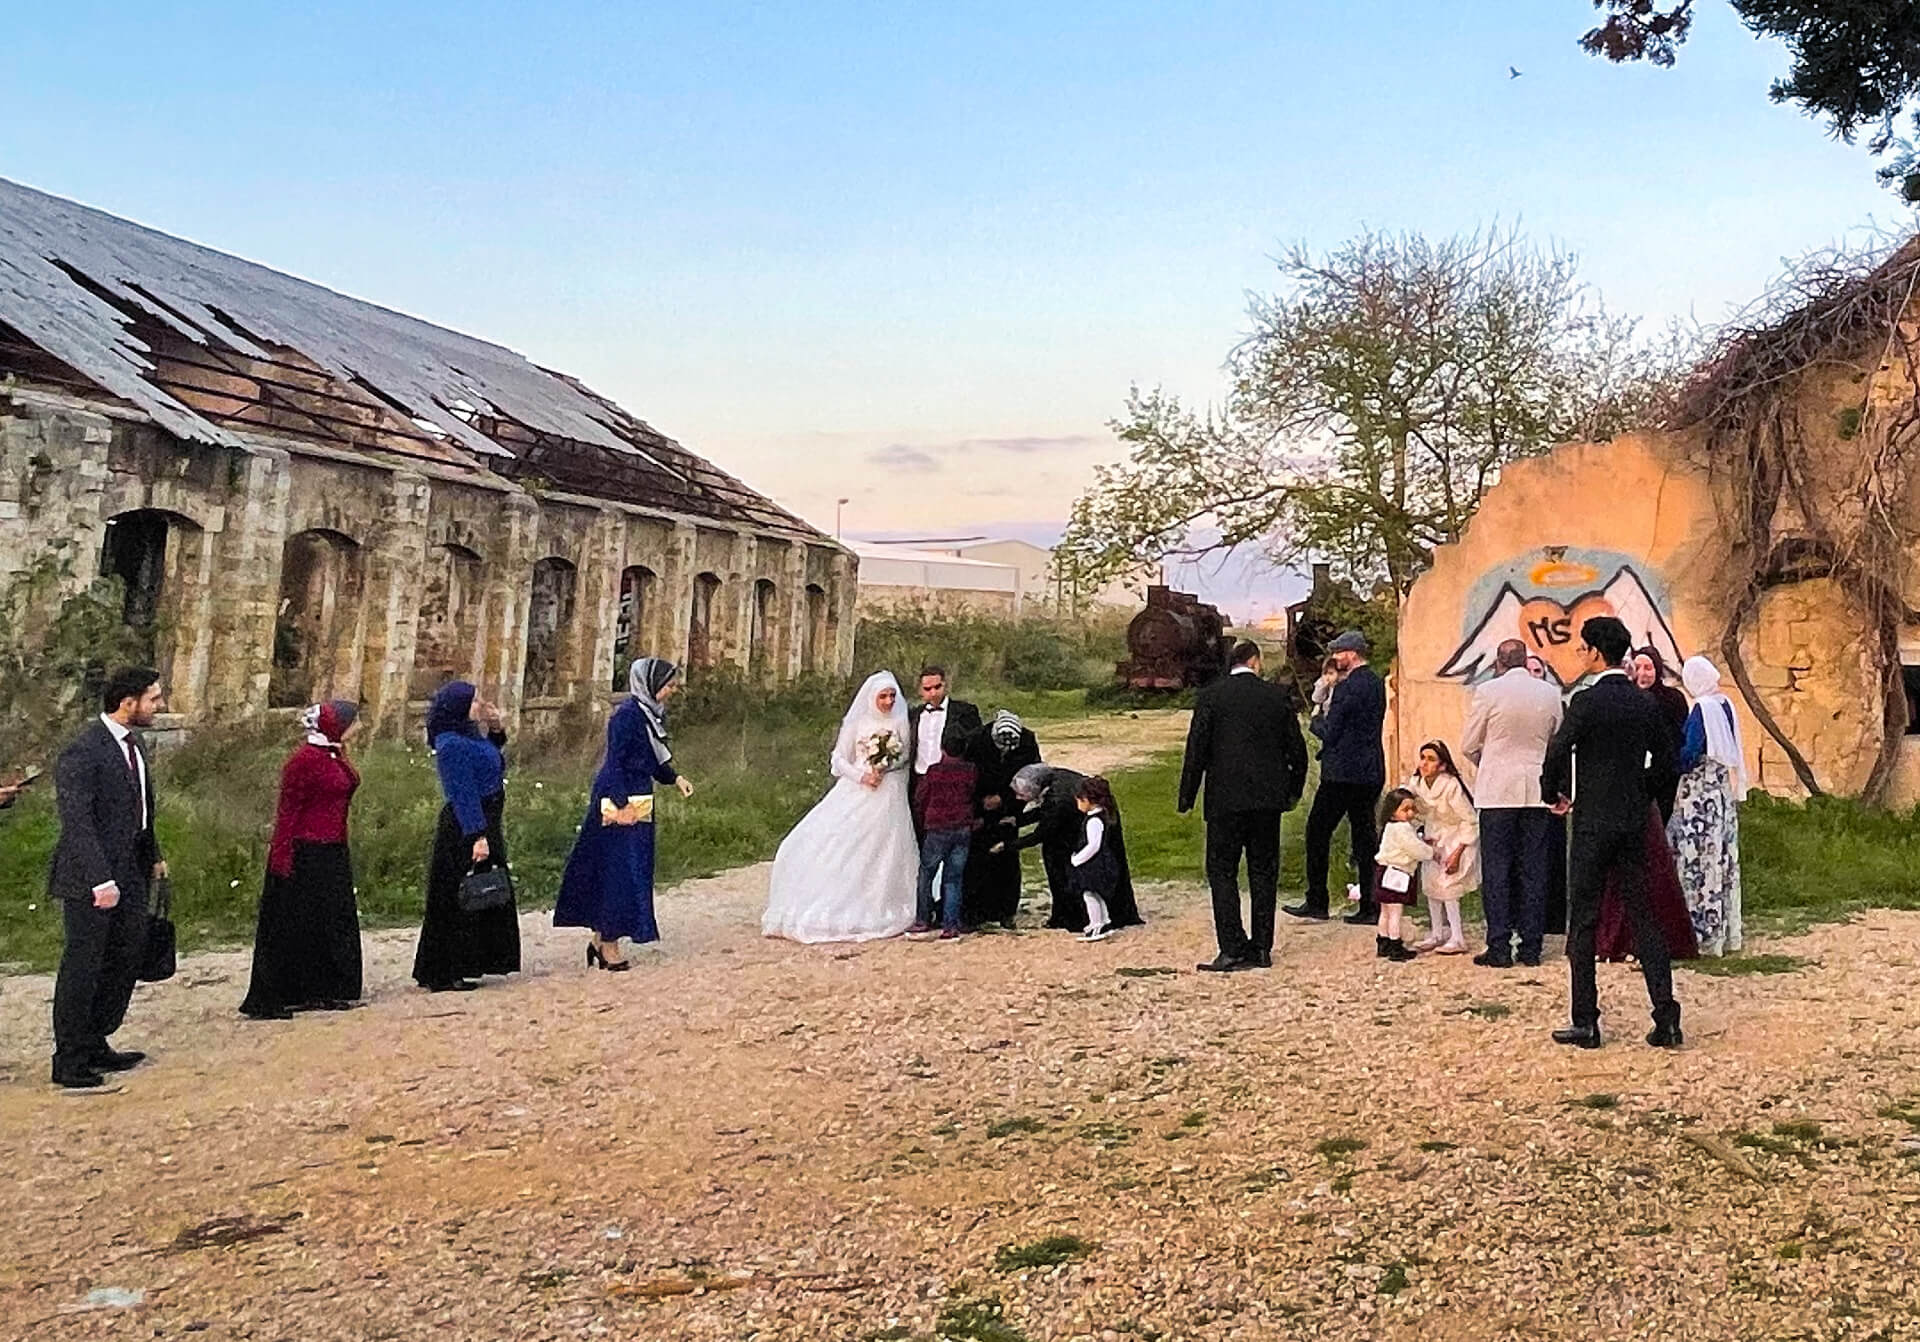 A wedding party taking photos in the old station